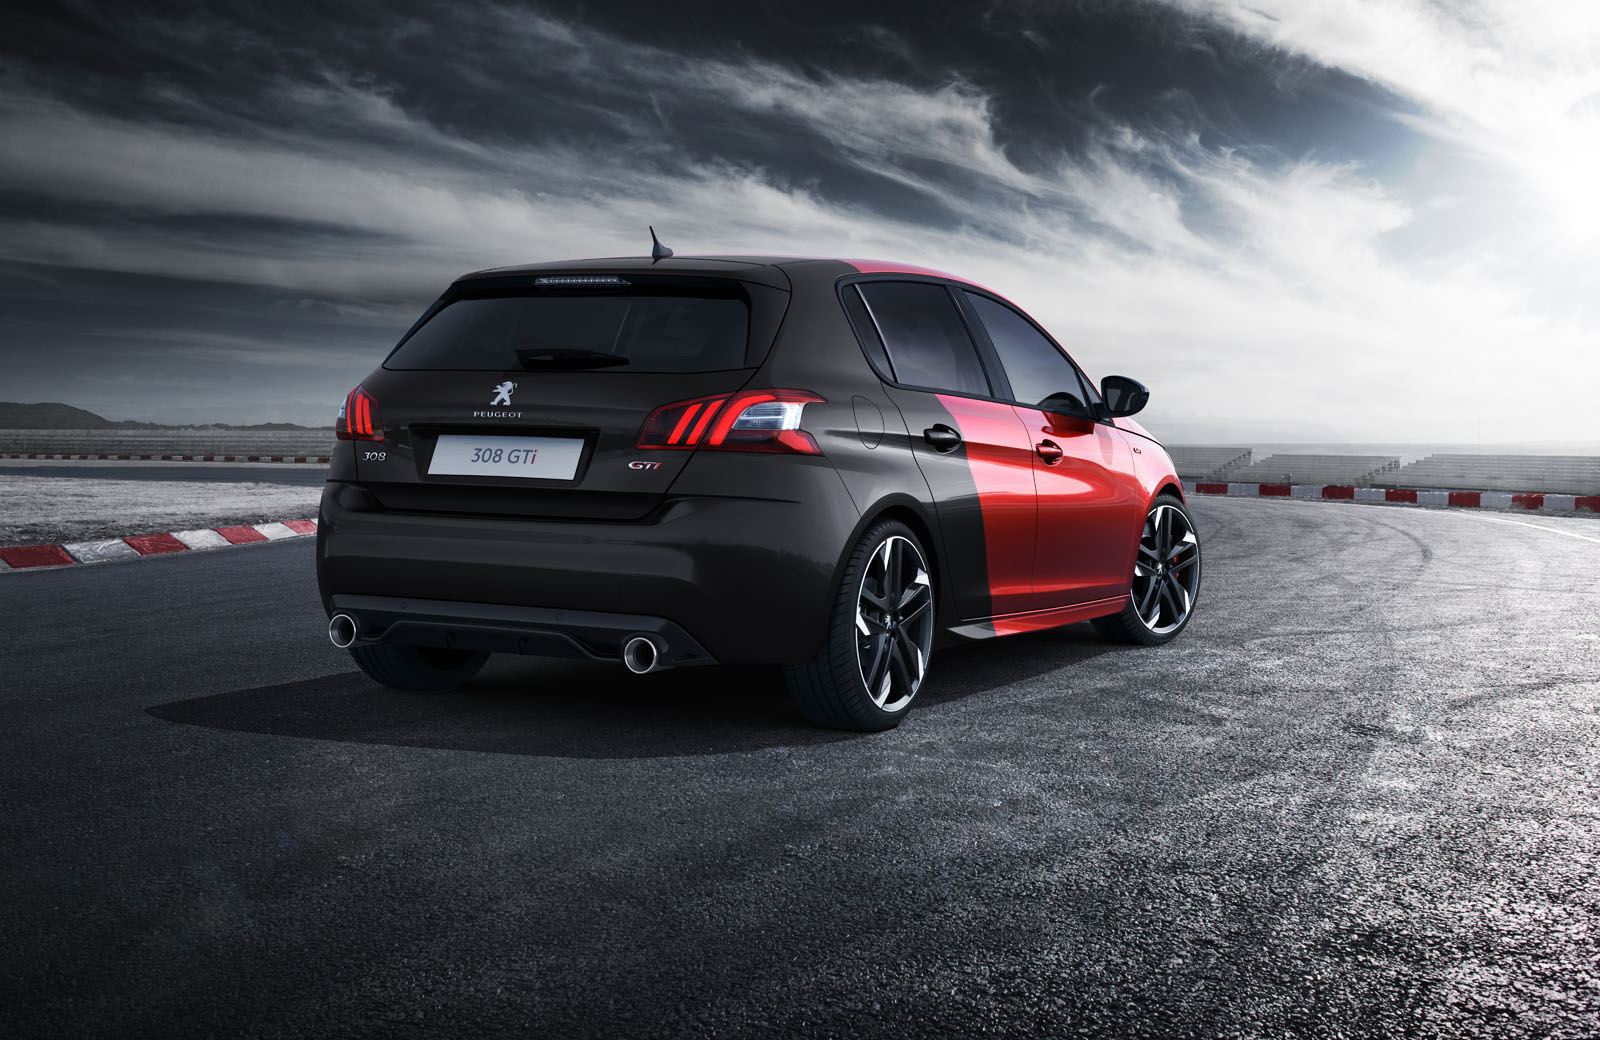 nouvelle peugeot 308 gti chronique d 39 un succ s annonc french driver. Black Bedroom Furniture Sets. Home Design Ideas